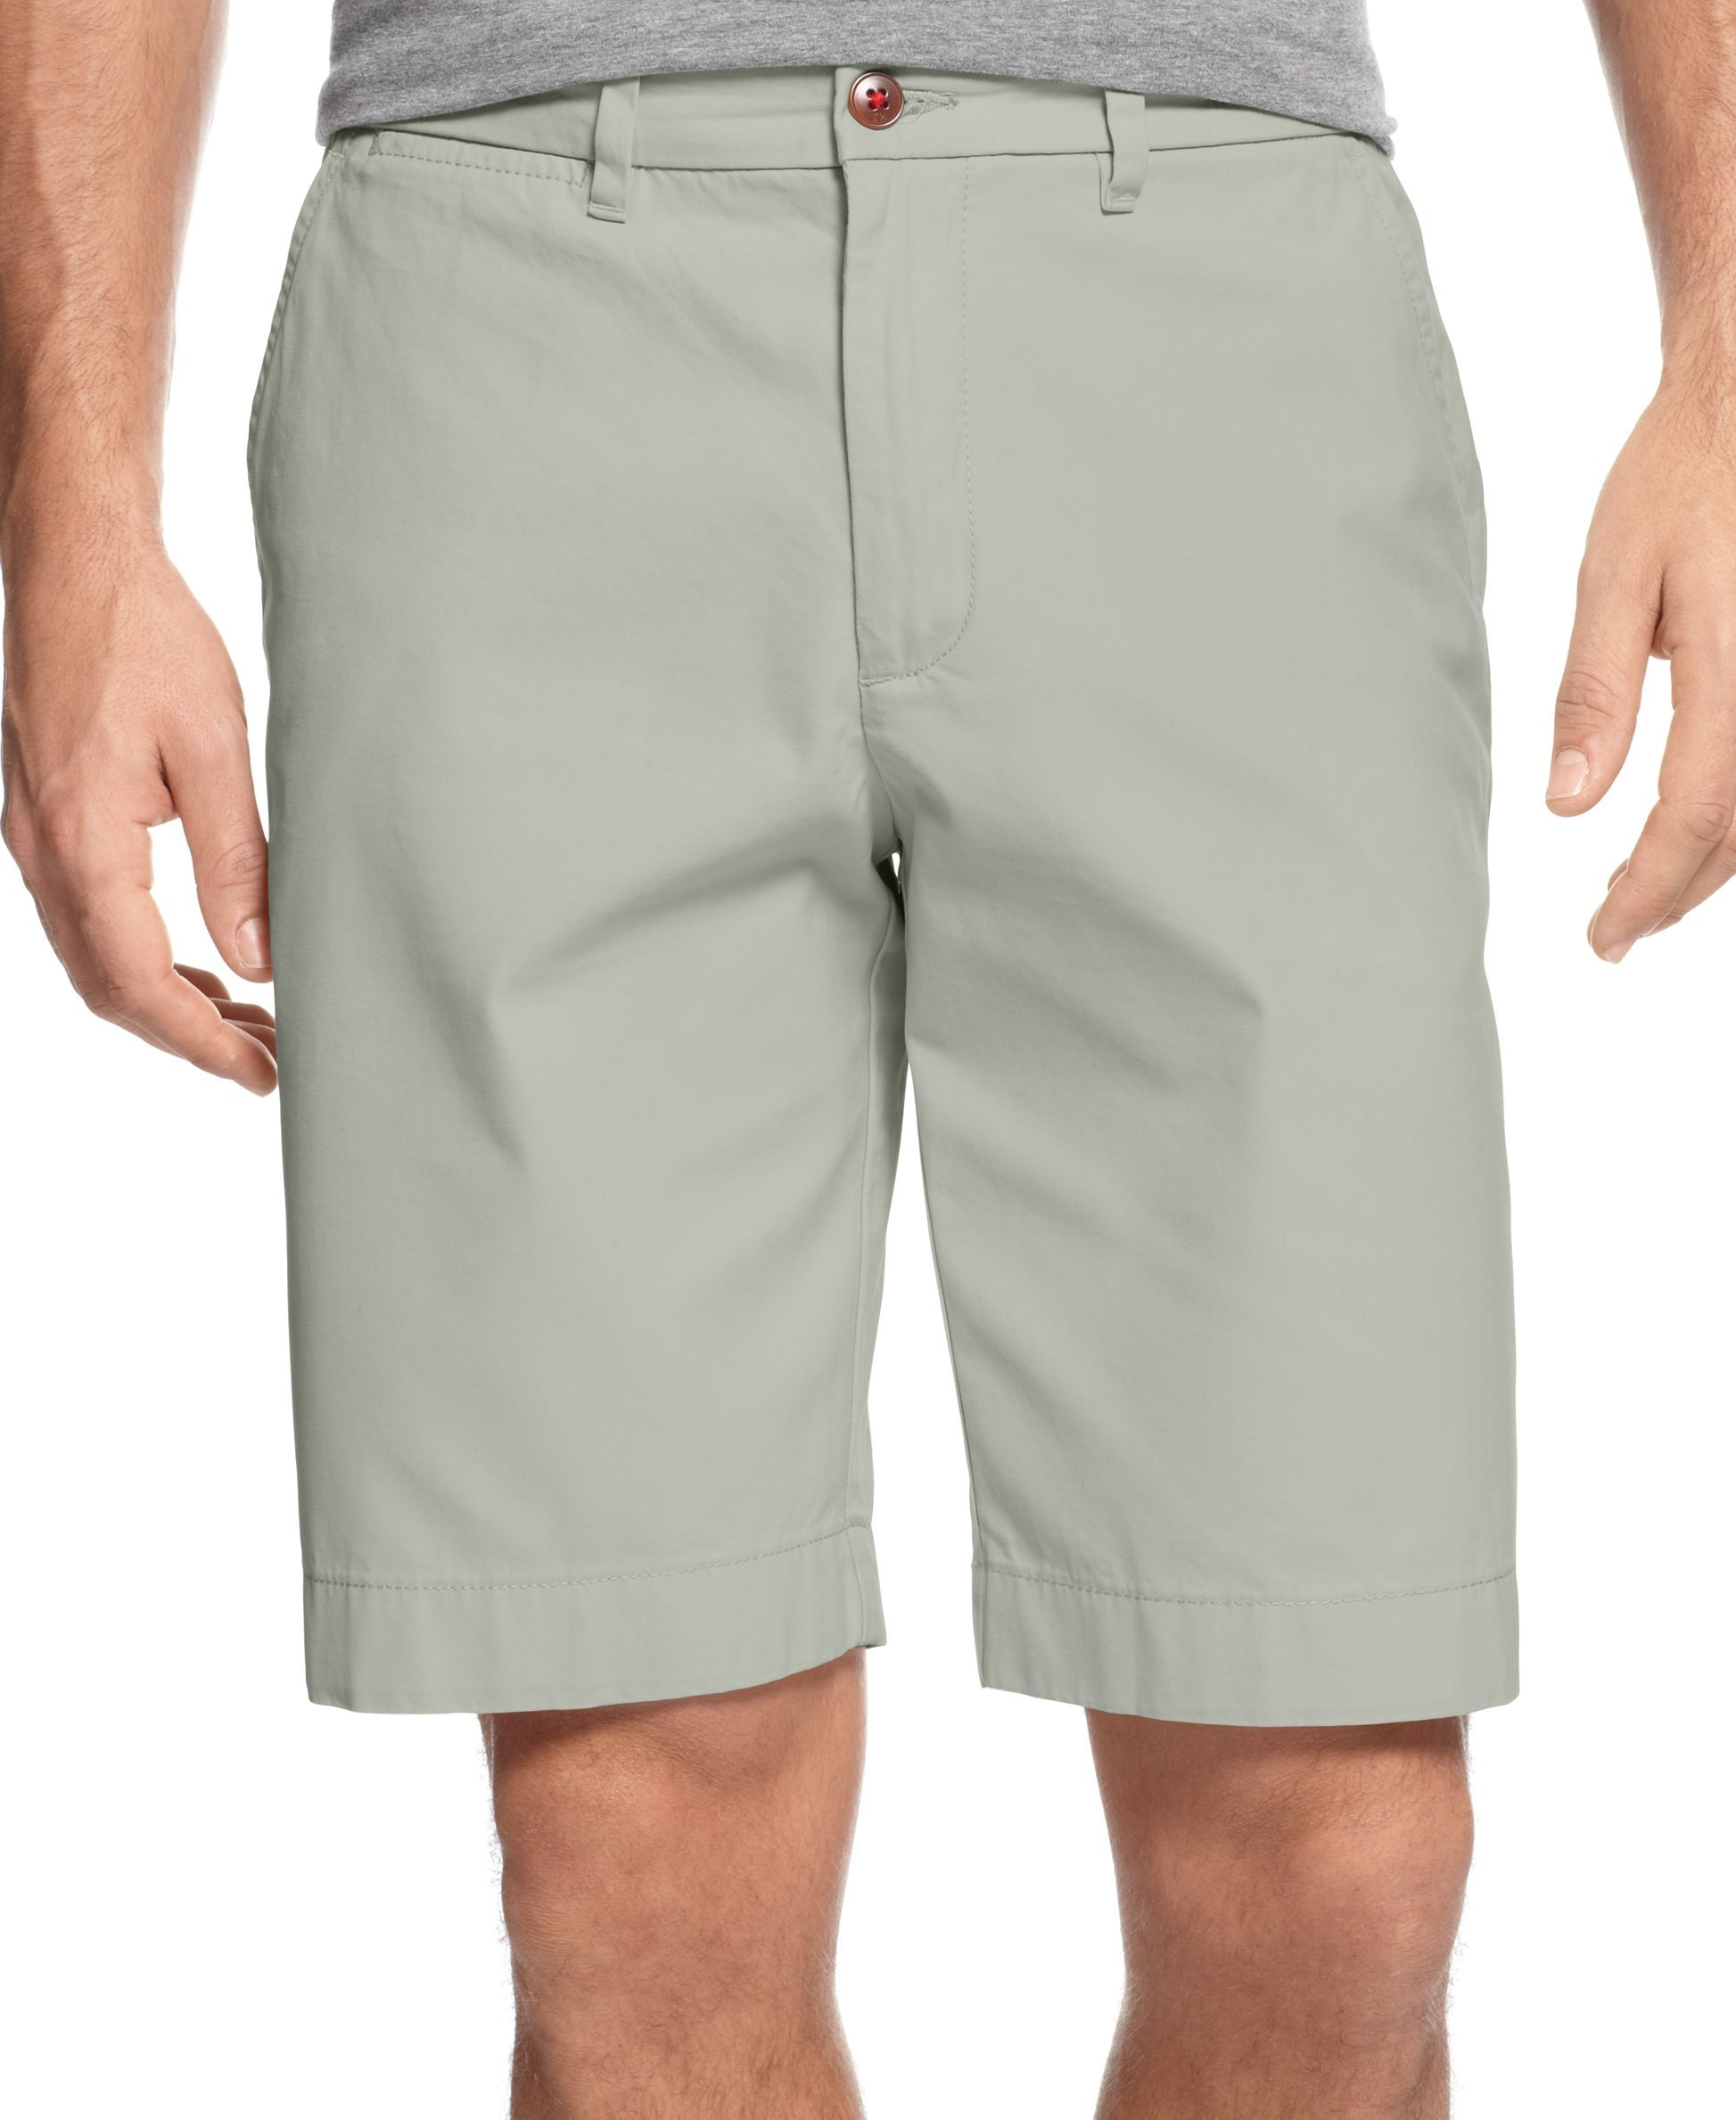 52a60f02 Tommy Hilfiger Men's Classic-Fit Chino Shorts Tommy Hilfiger, Mens Big And  Tall,